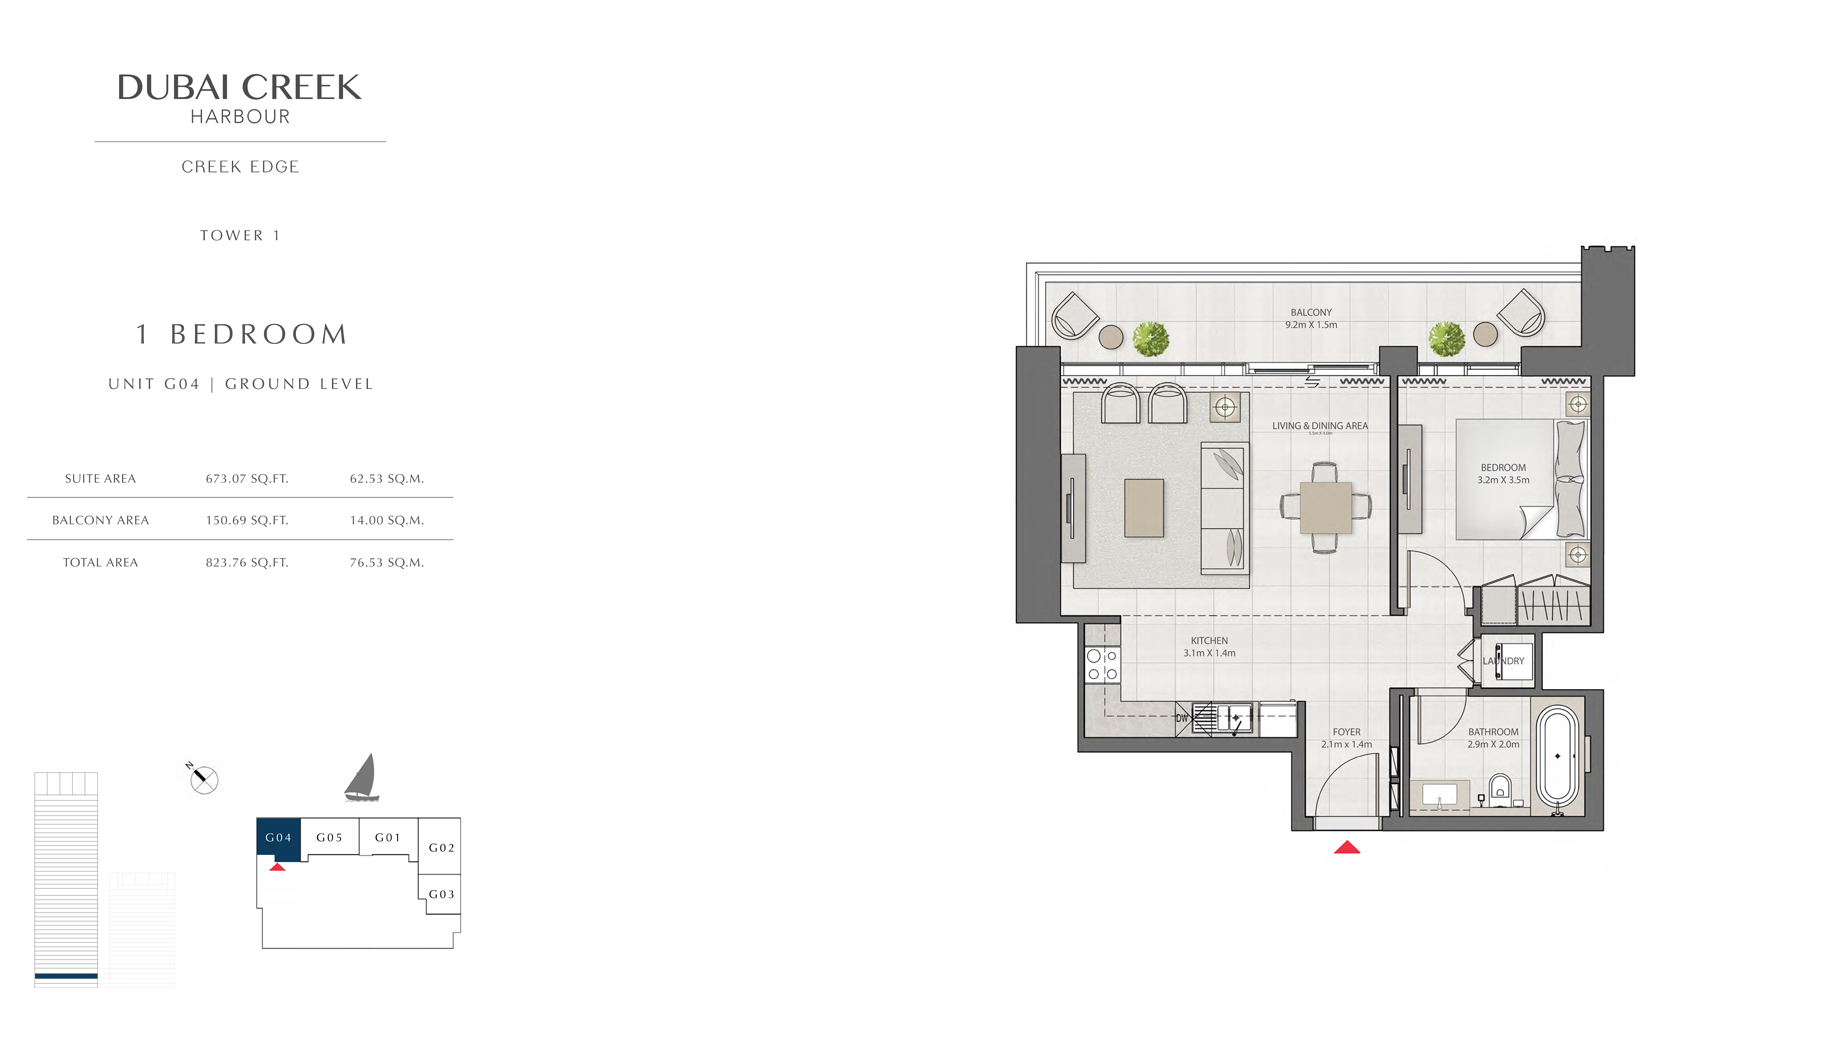 1 Bedroom Tower 1 Unit G04_GL 823 sq.ft